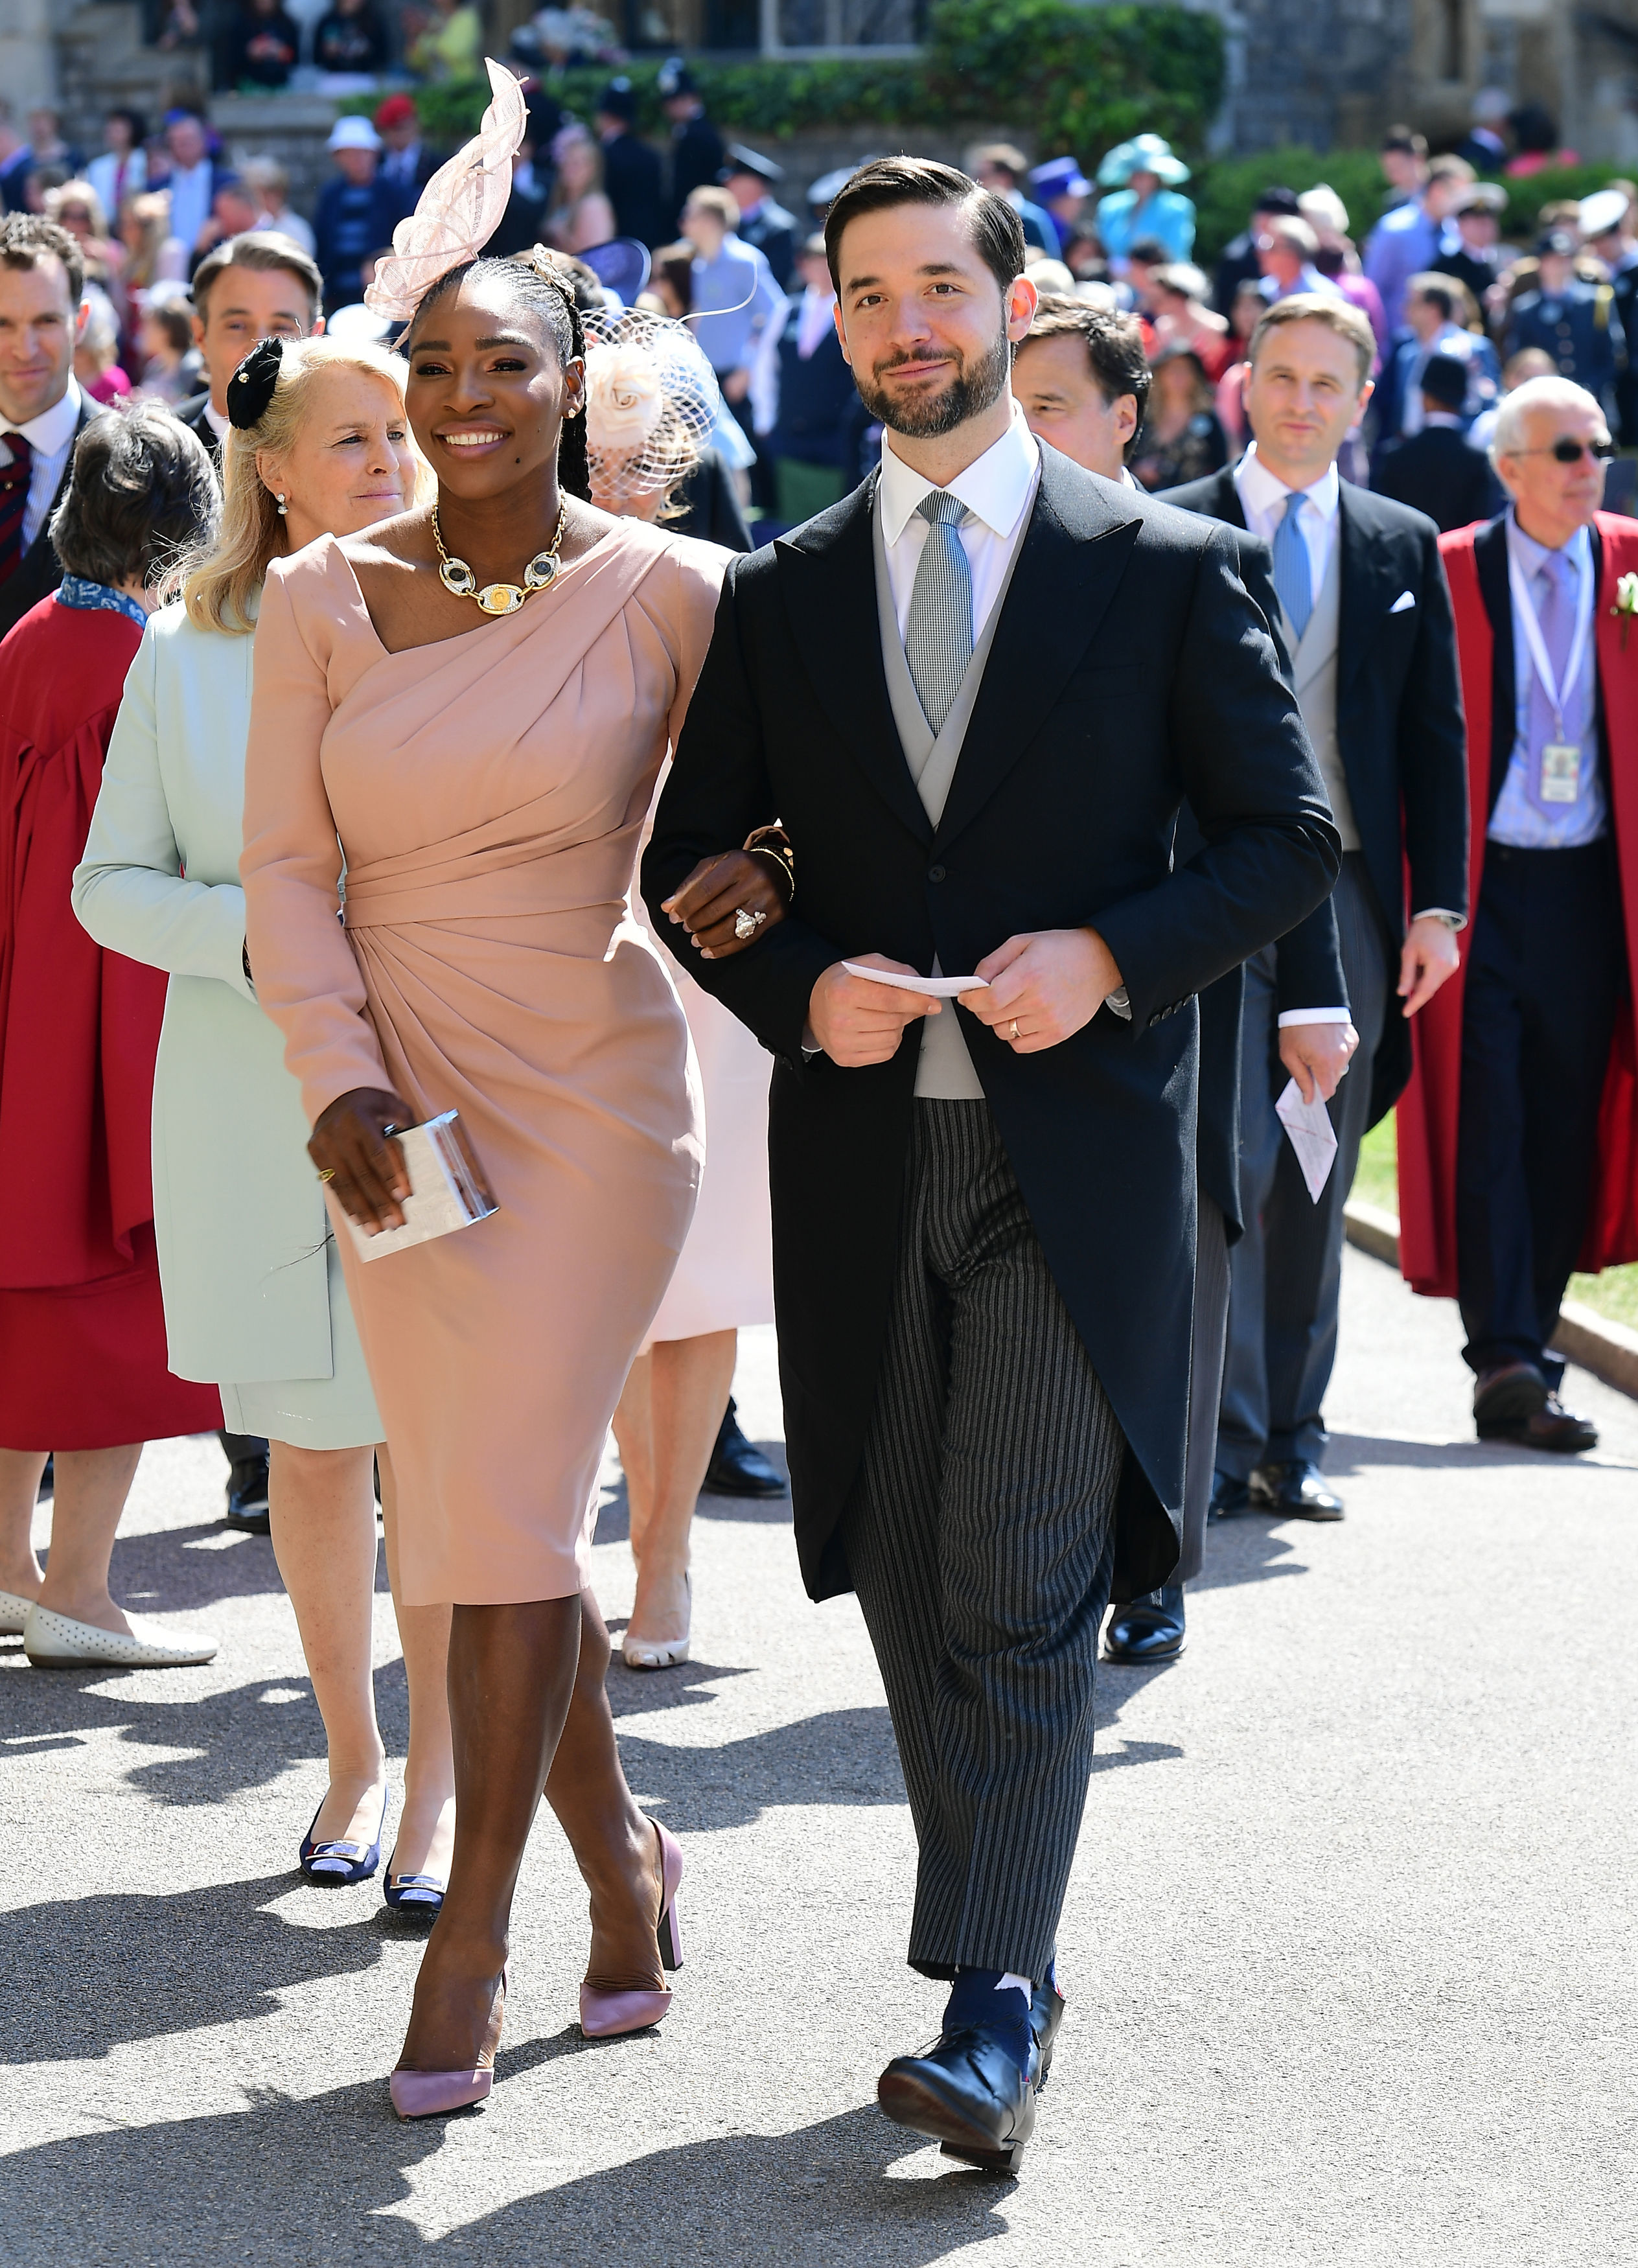 Serena Williams and her husband Alexis Ohanian arrive for the wedding ceremony of Britain's Prince Harry and US actress Meghan Markle at St George's Chapel, Windsor Castle on May 19, 2018 in Windsor, England.